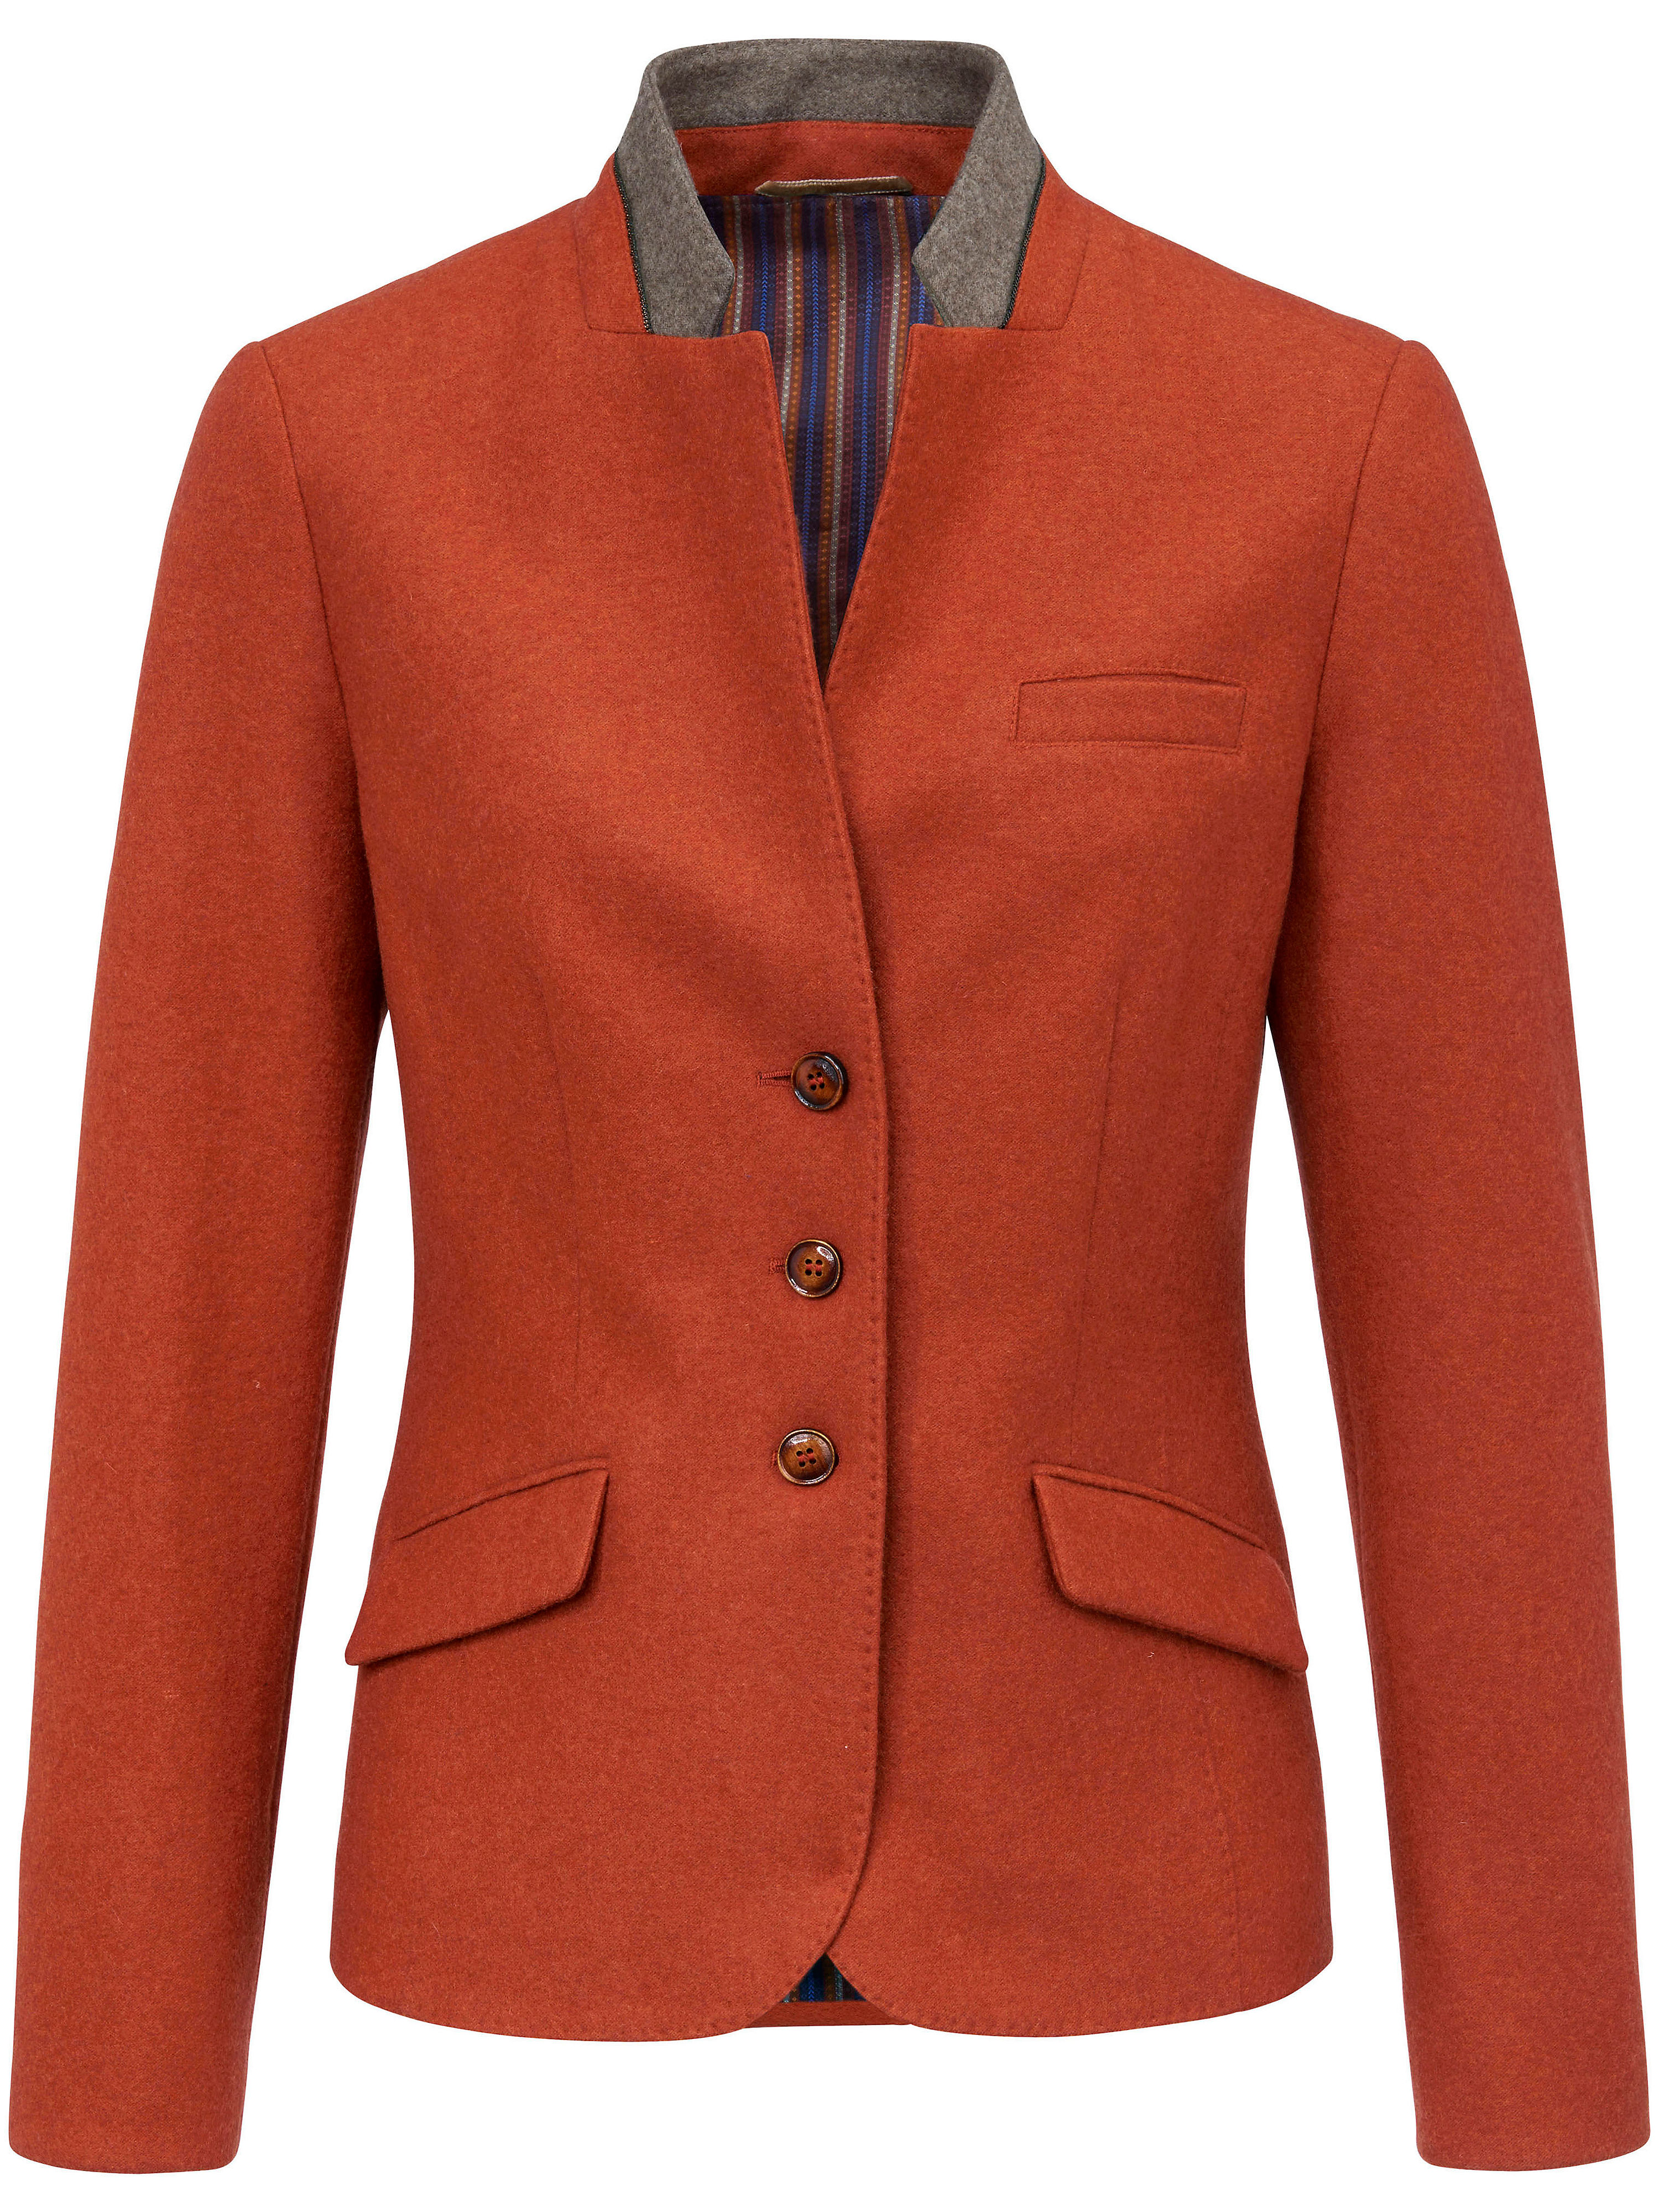 Image of   Blazer Fra Schneiders Salzburg orange